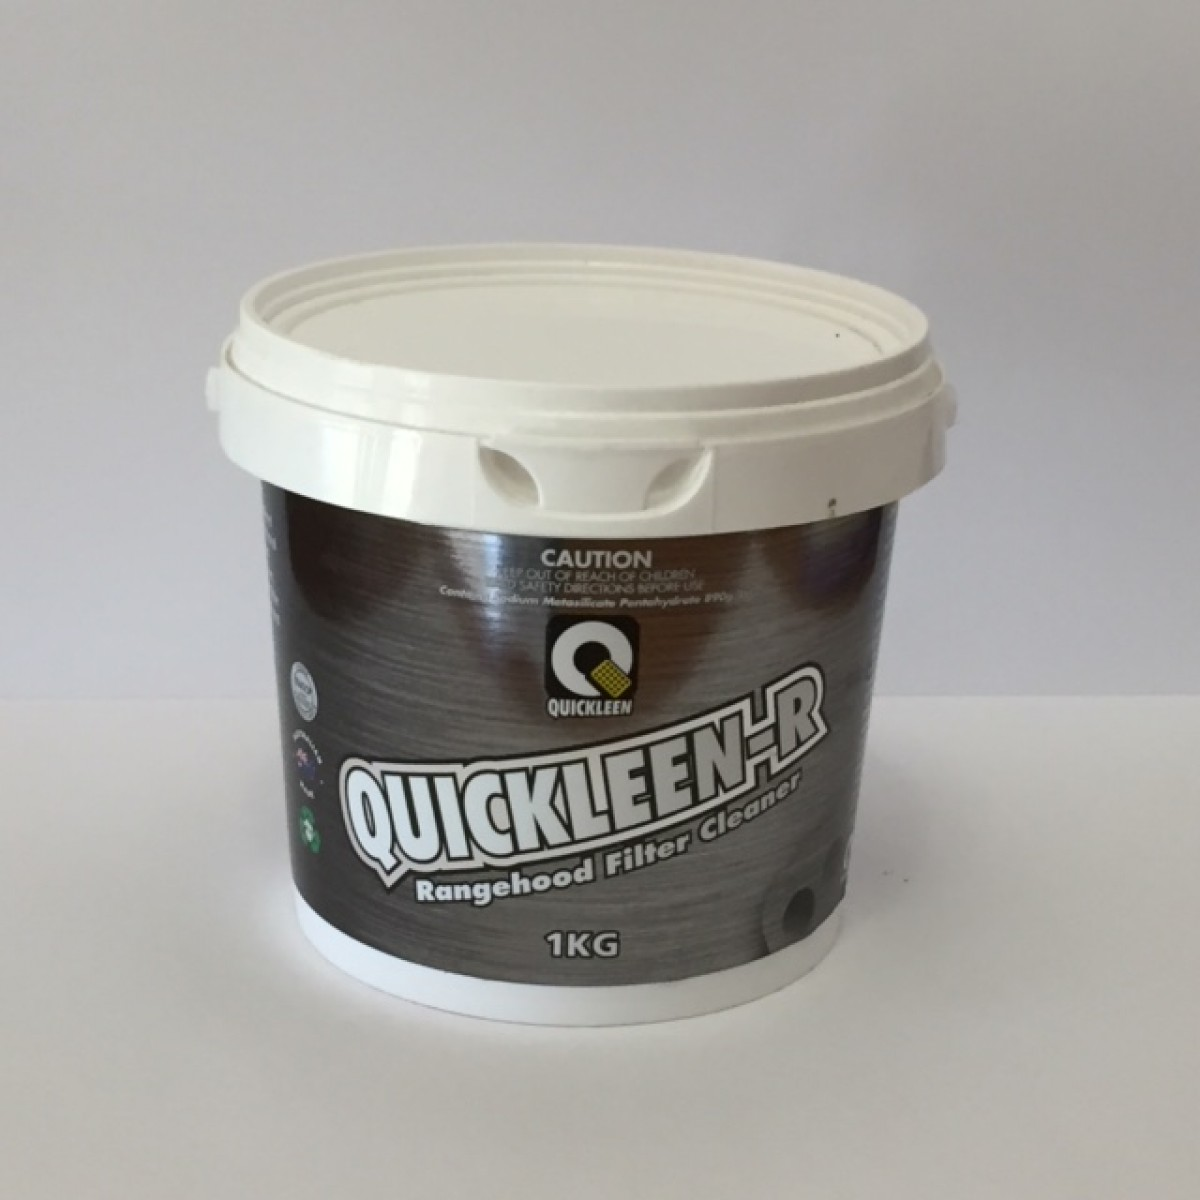 Quickleen-R